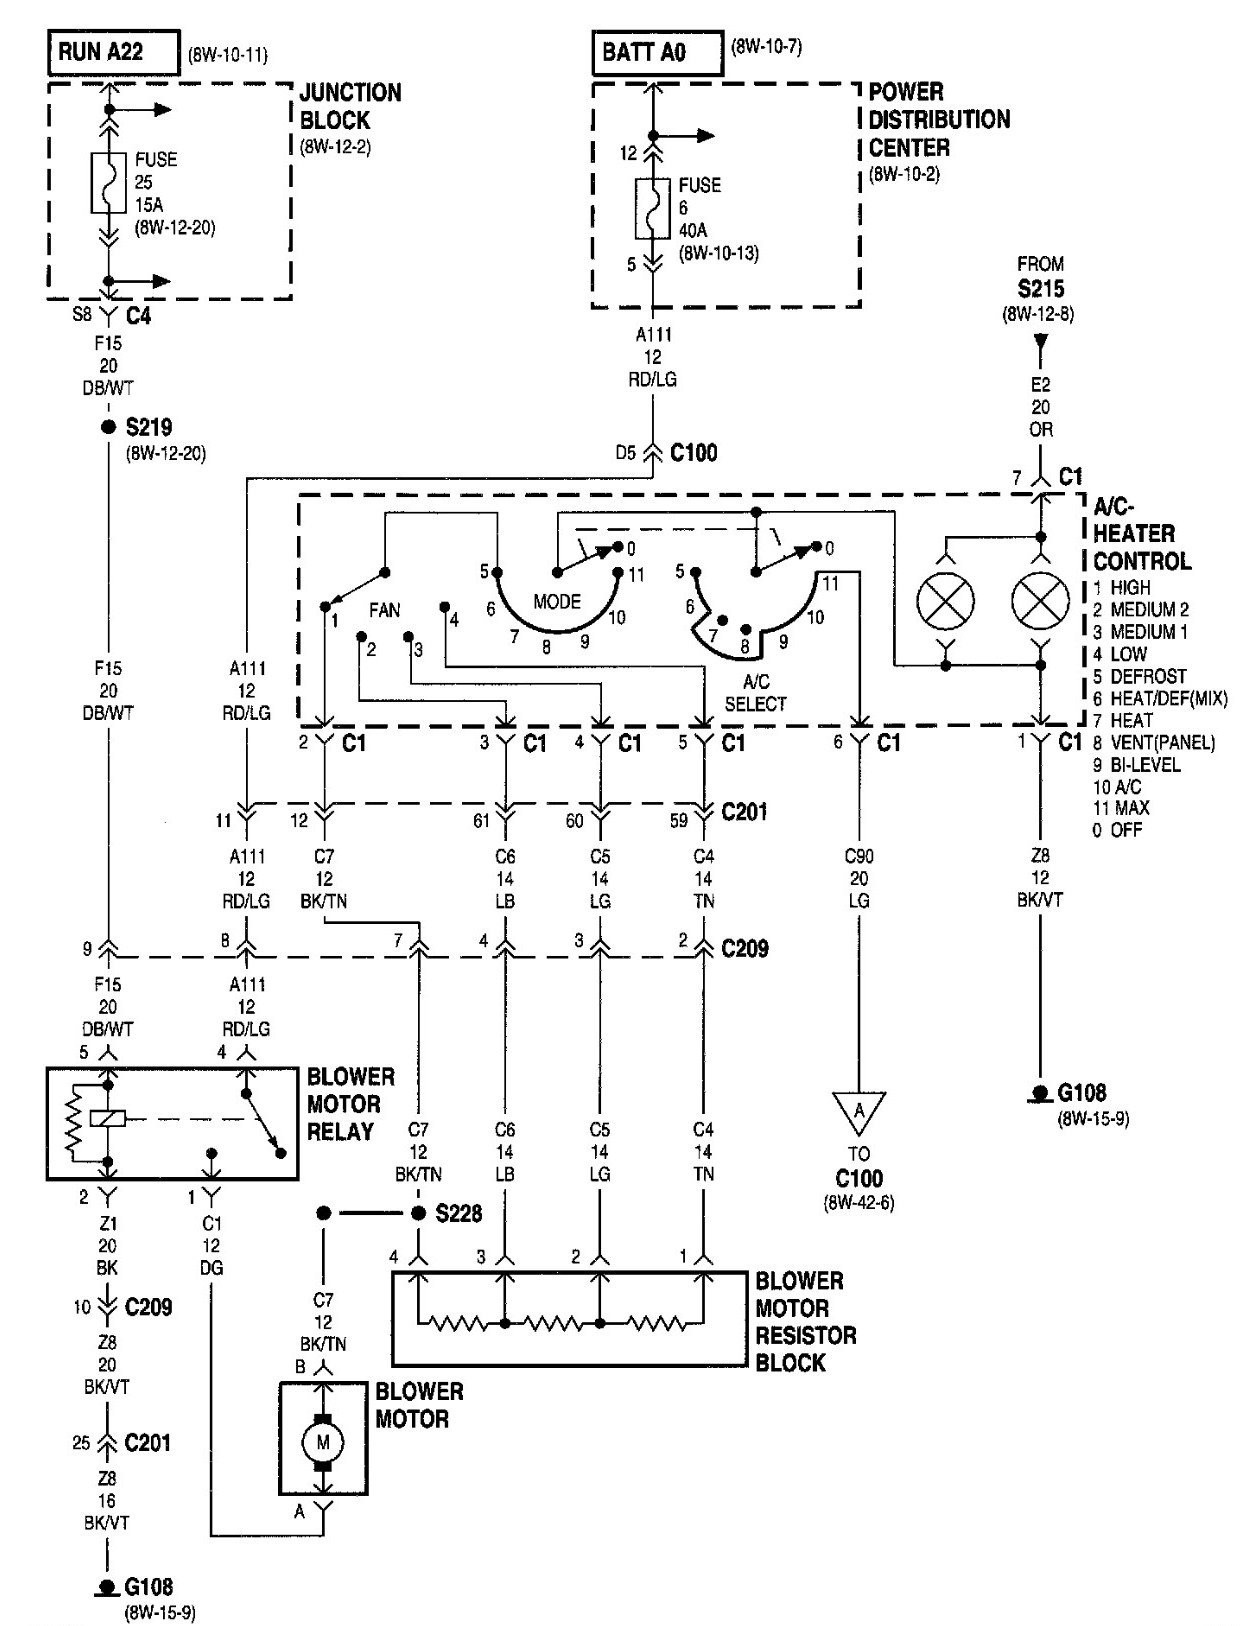 2000 Jeep Grand Cherokee Laredo Engine Diagram Wiring Diagram 2000 Jeep Grand Cherokee Laredo Refrence 2000 Jeep Of 2000 Jeep Grand Cherokee Laredo Engine Diagram